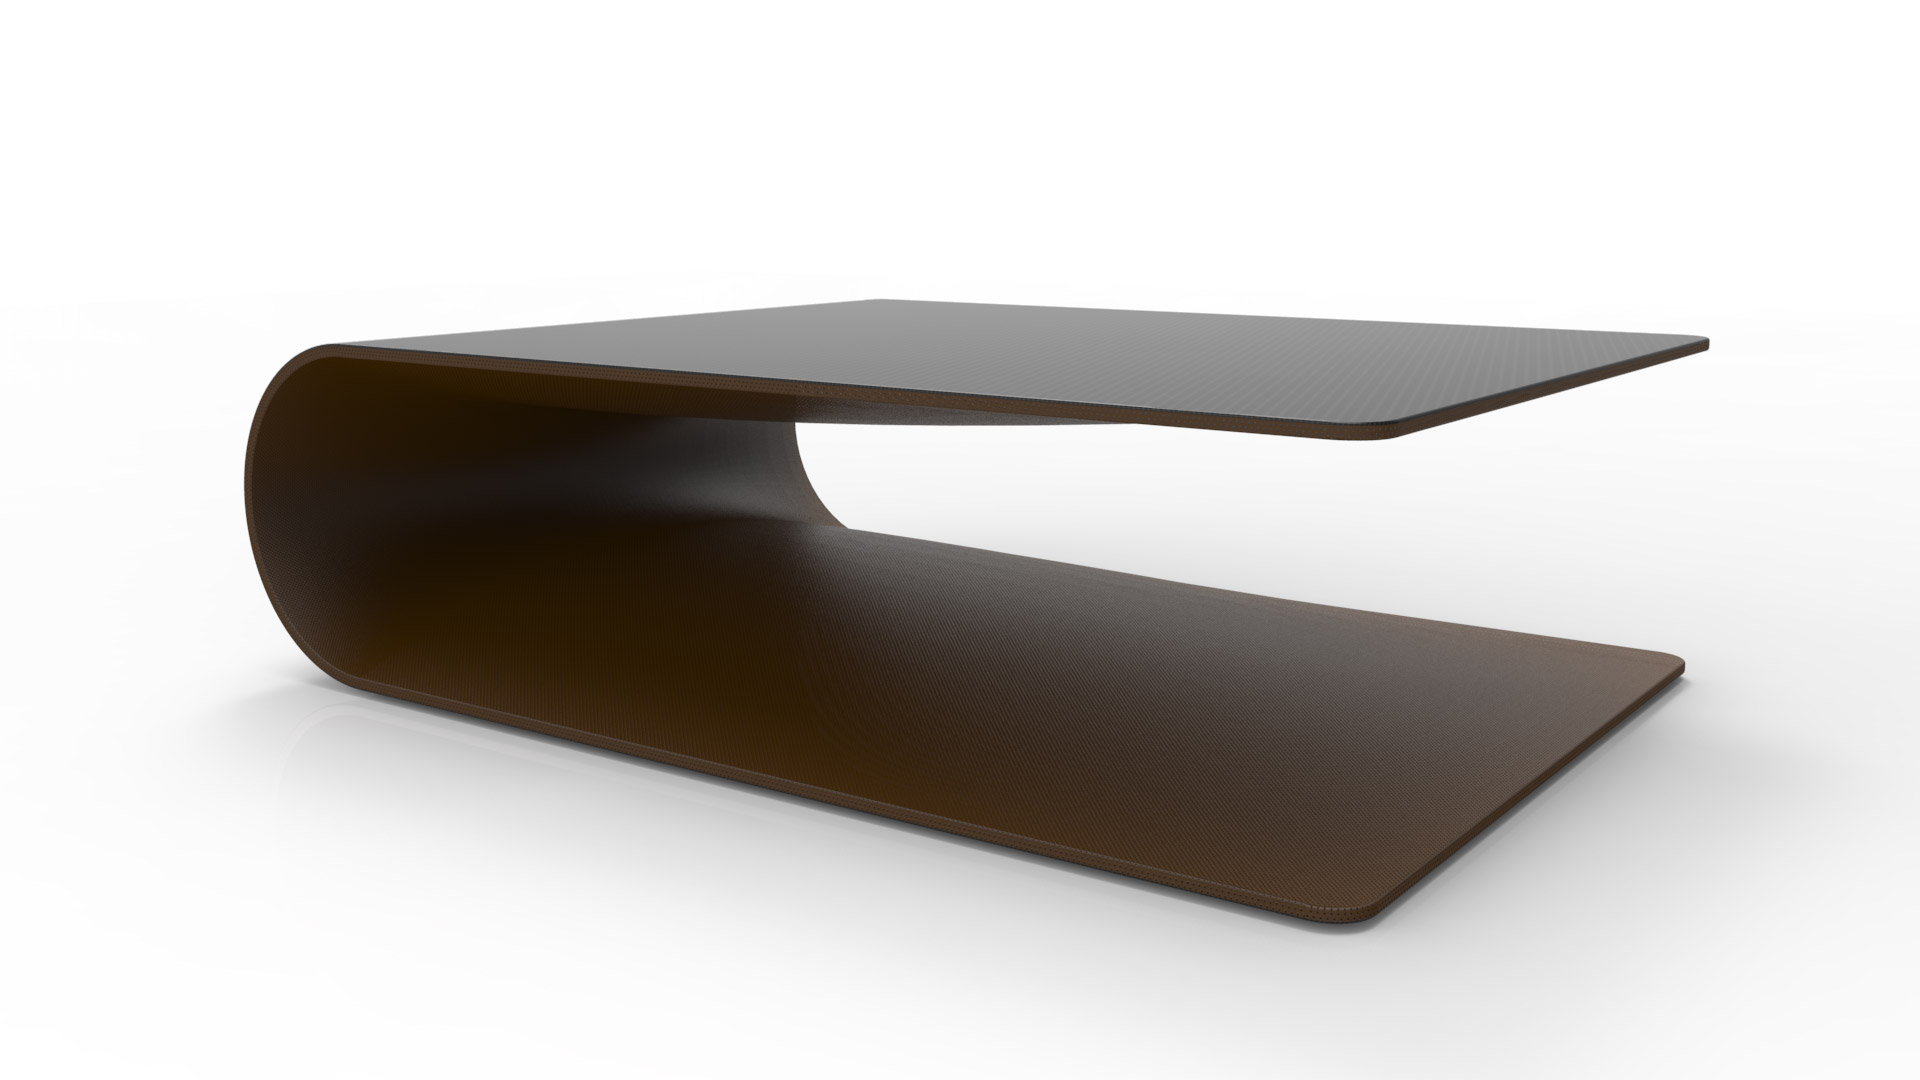 BOOMERANG. Low table or side table made of carbon fiber, Kevlar and structural foam. Leather coated on the inside, matte transparent painted carbon fiber on the outside.